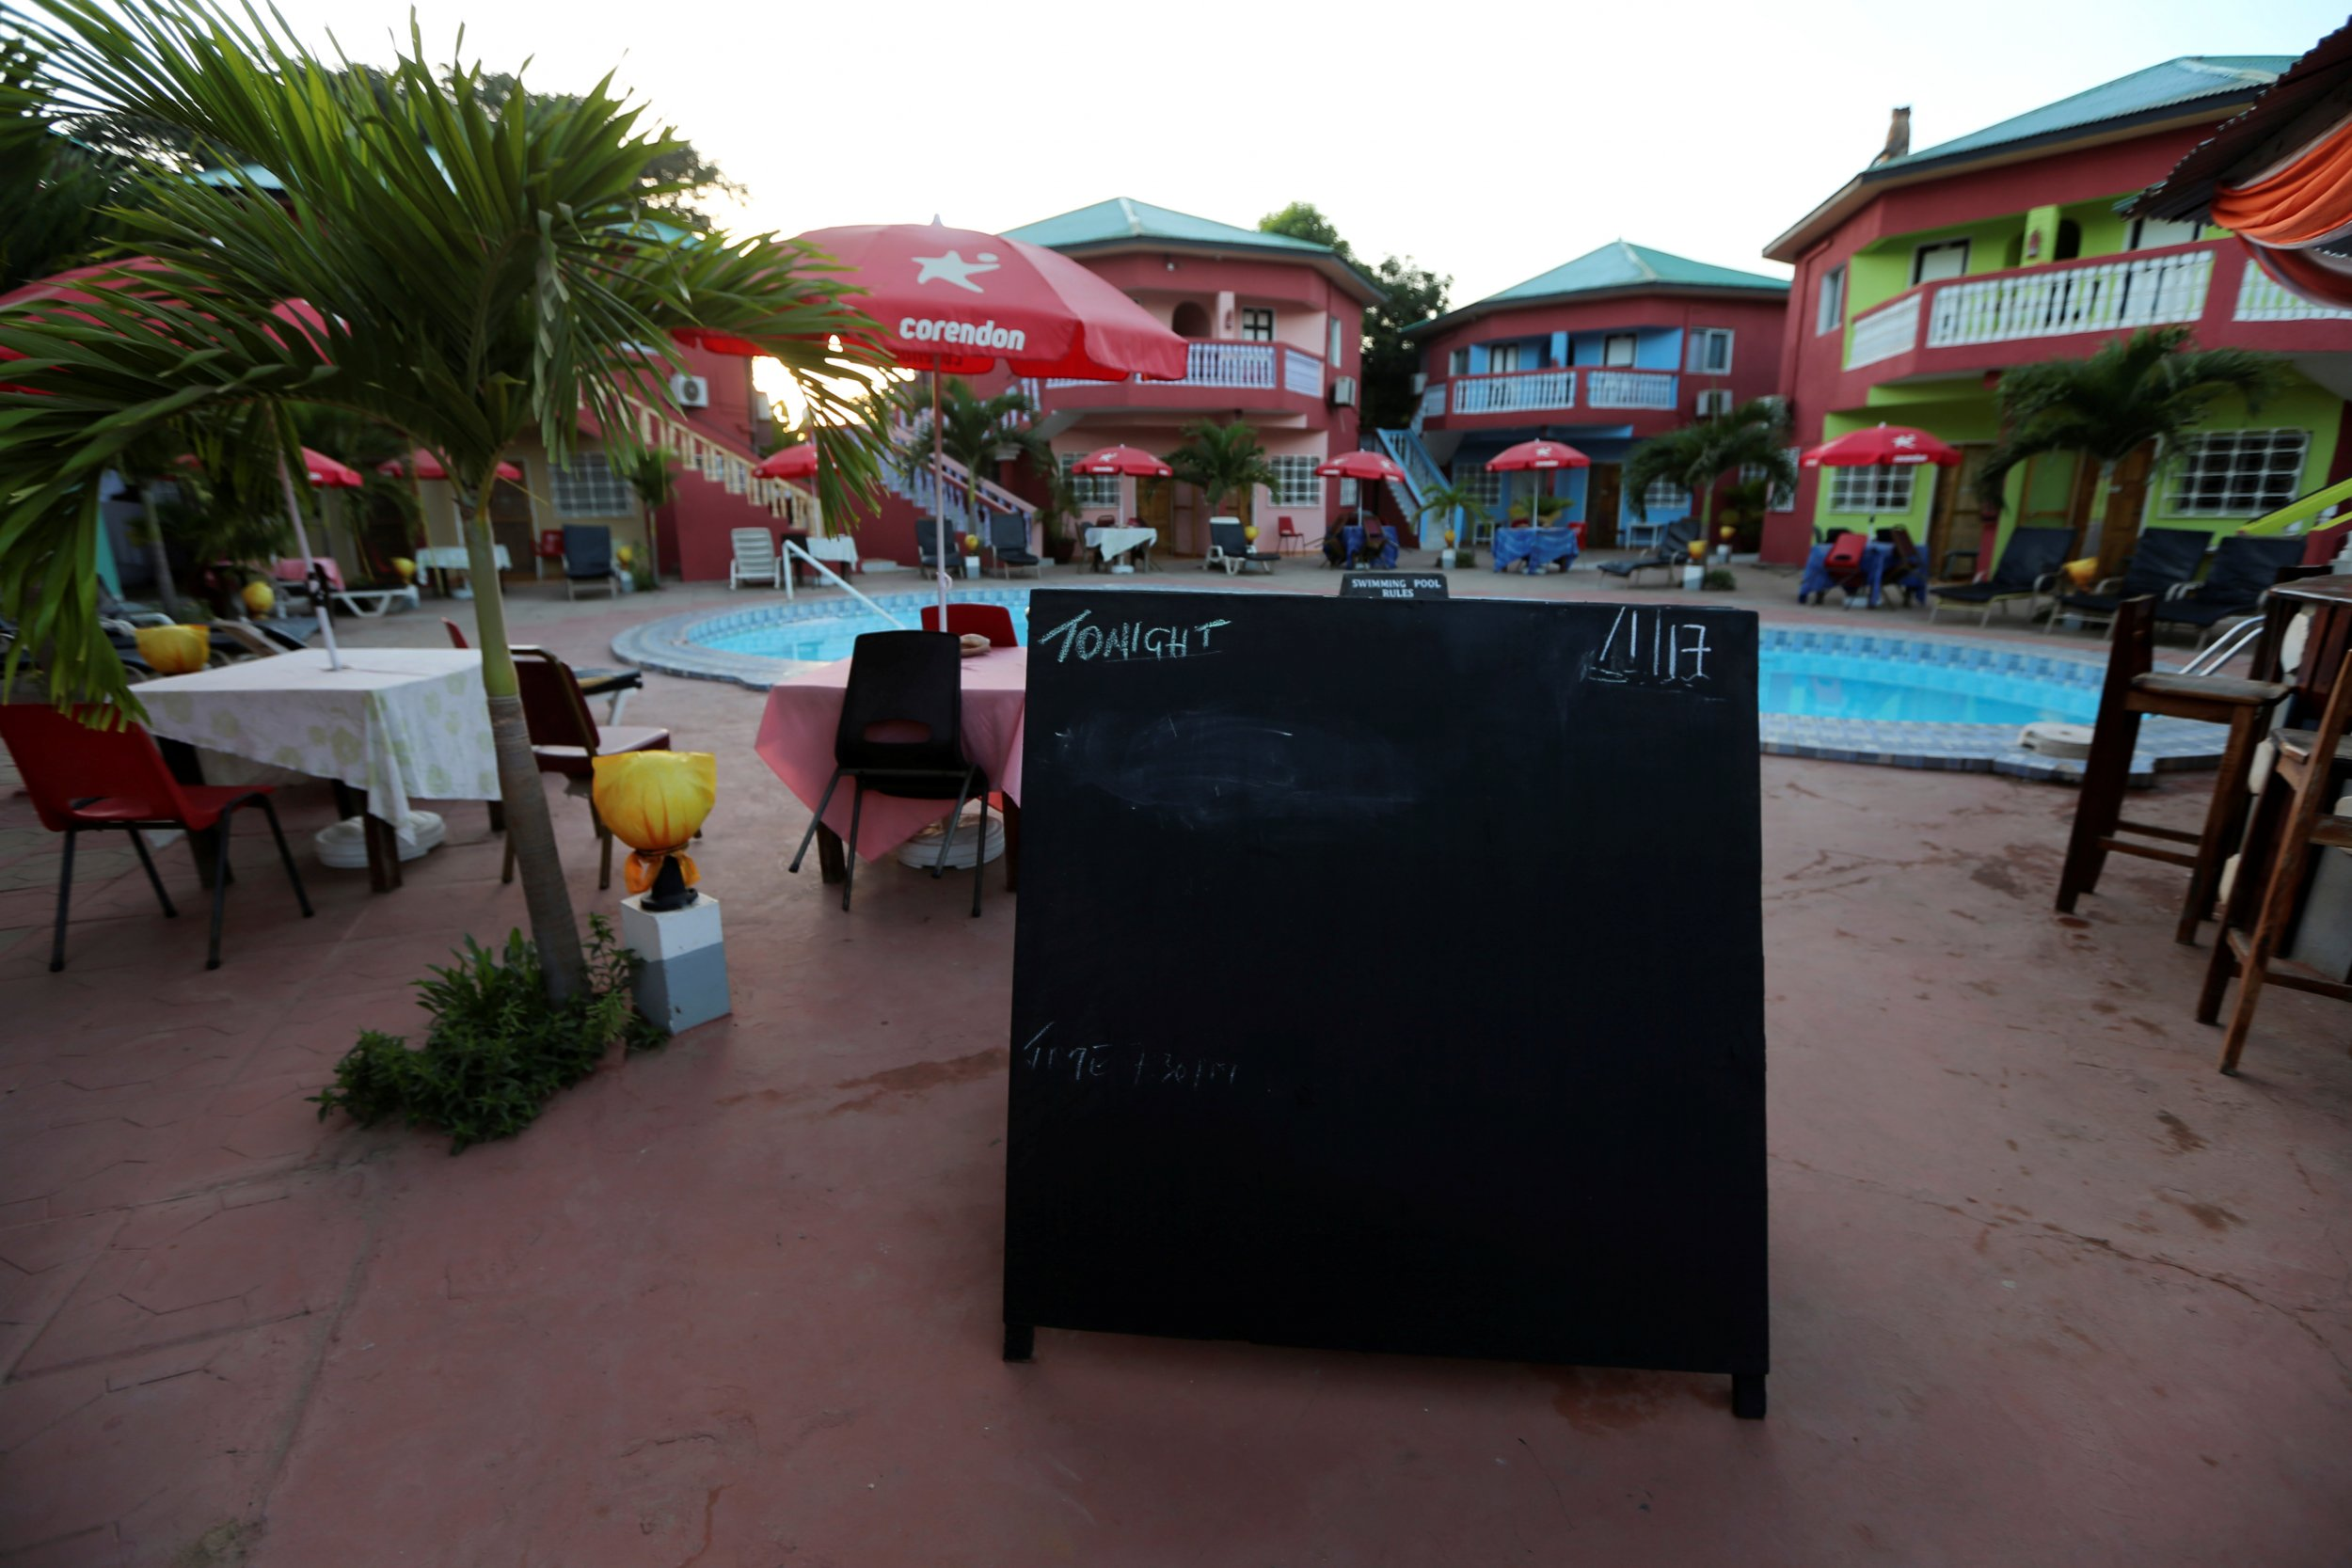 Gambia hotel